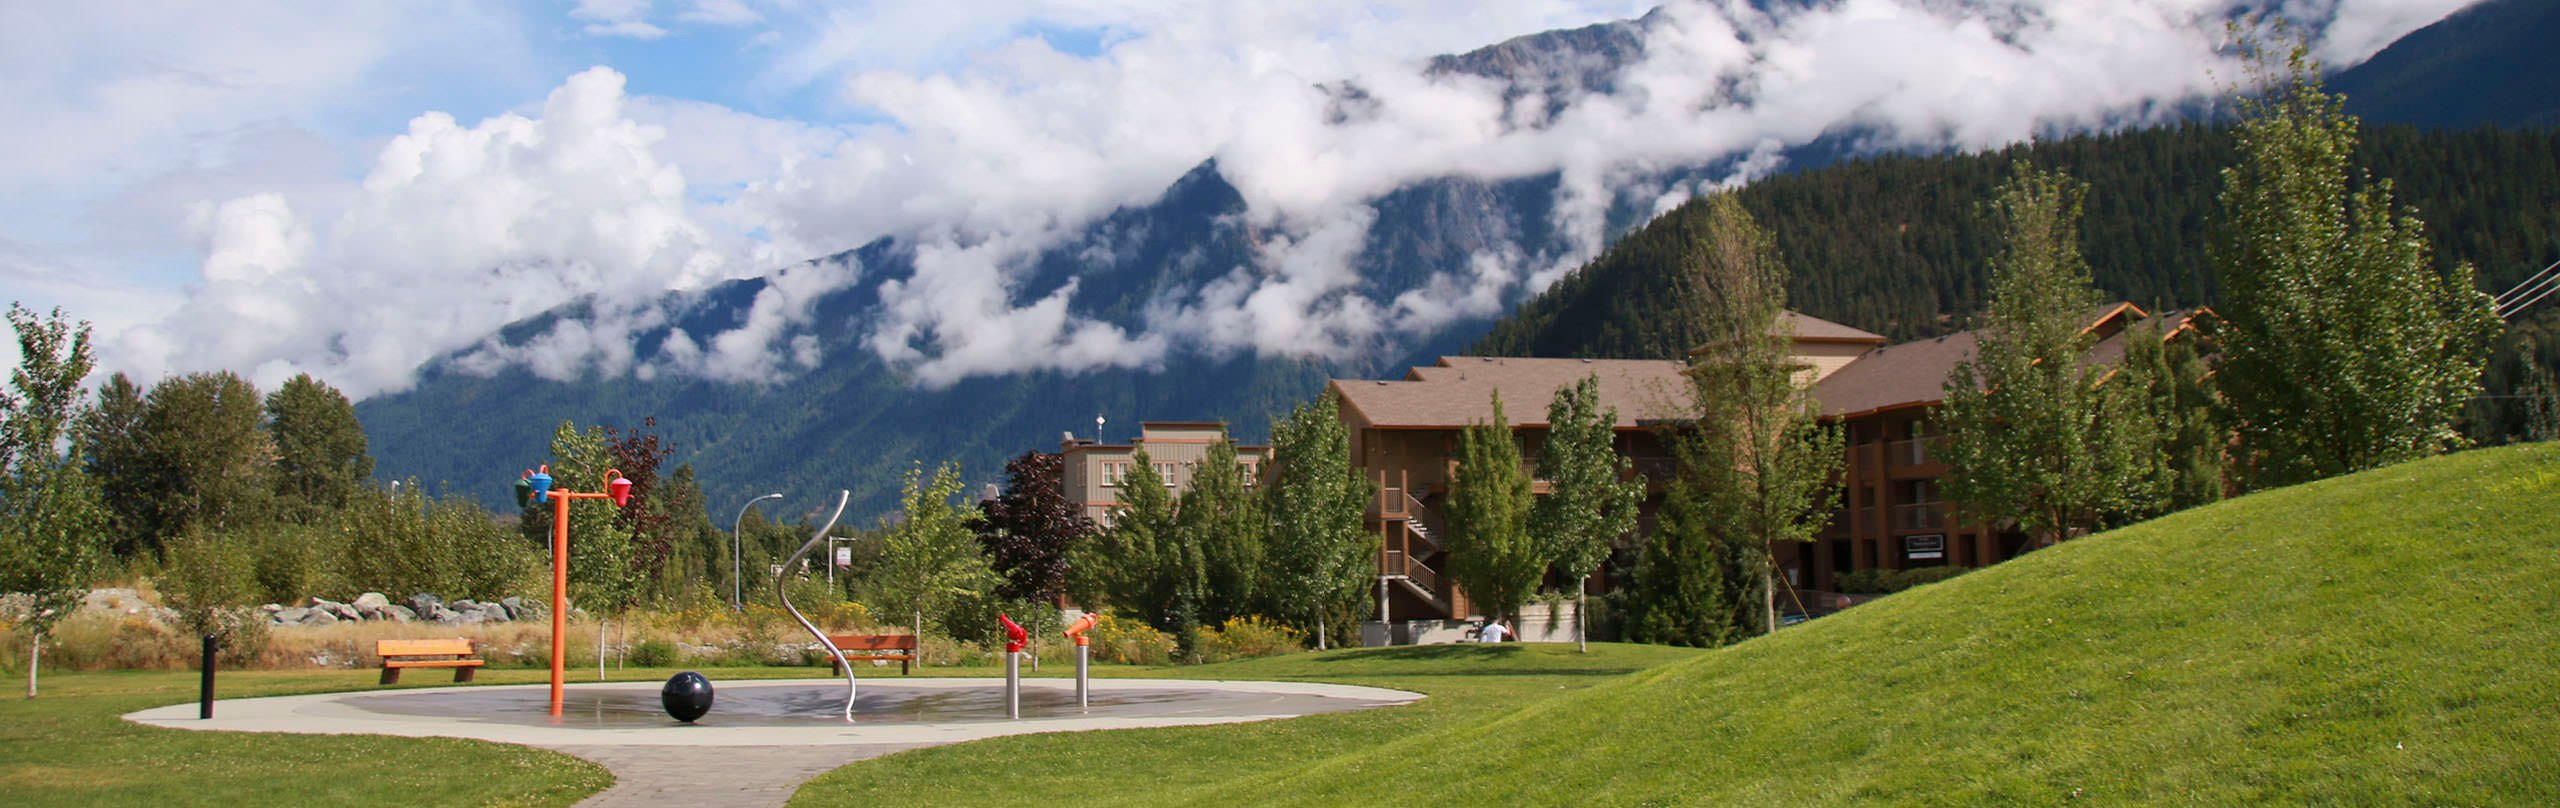 The town of Pemberton, BC